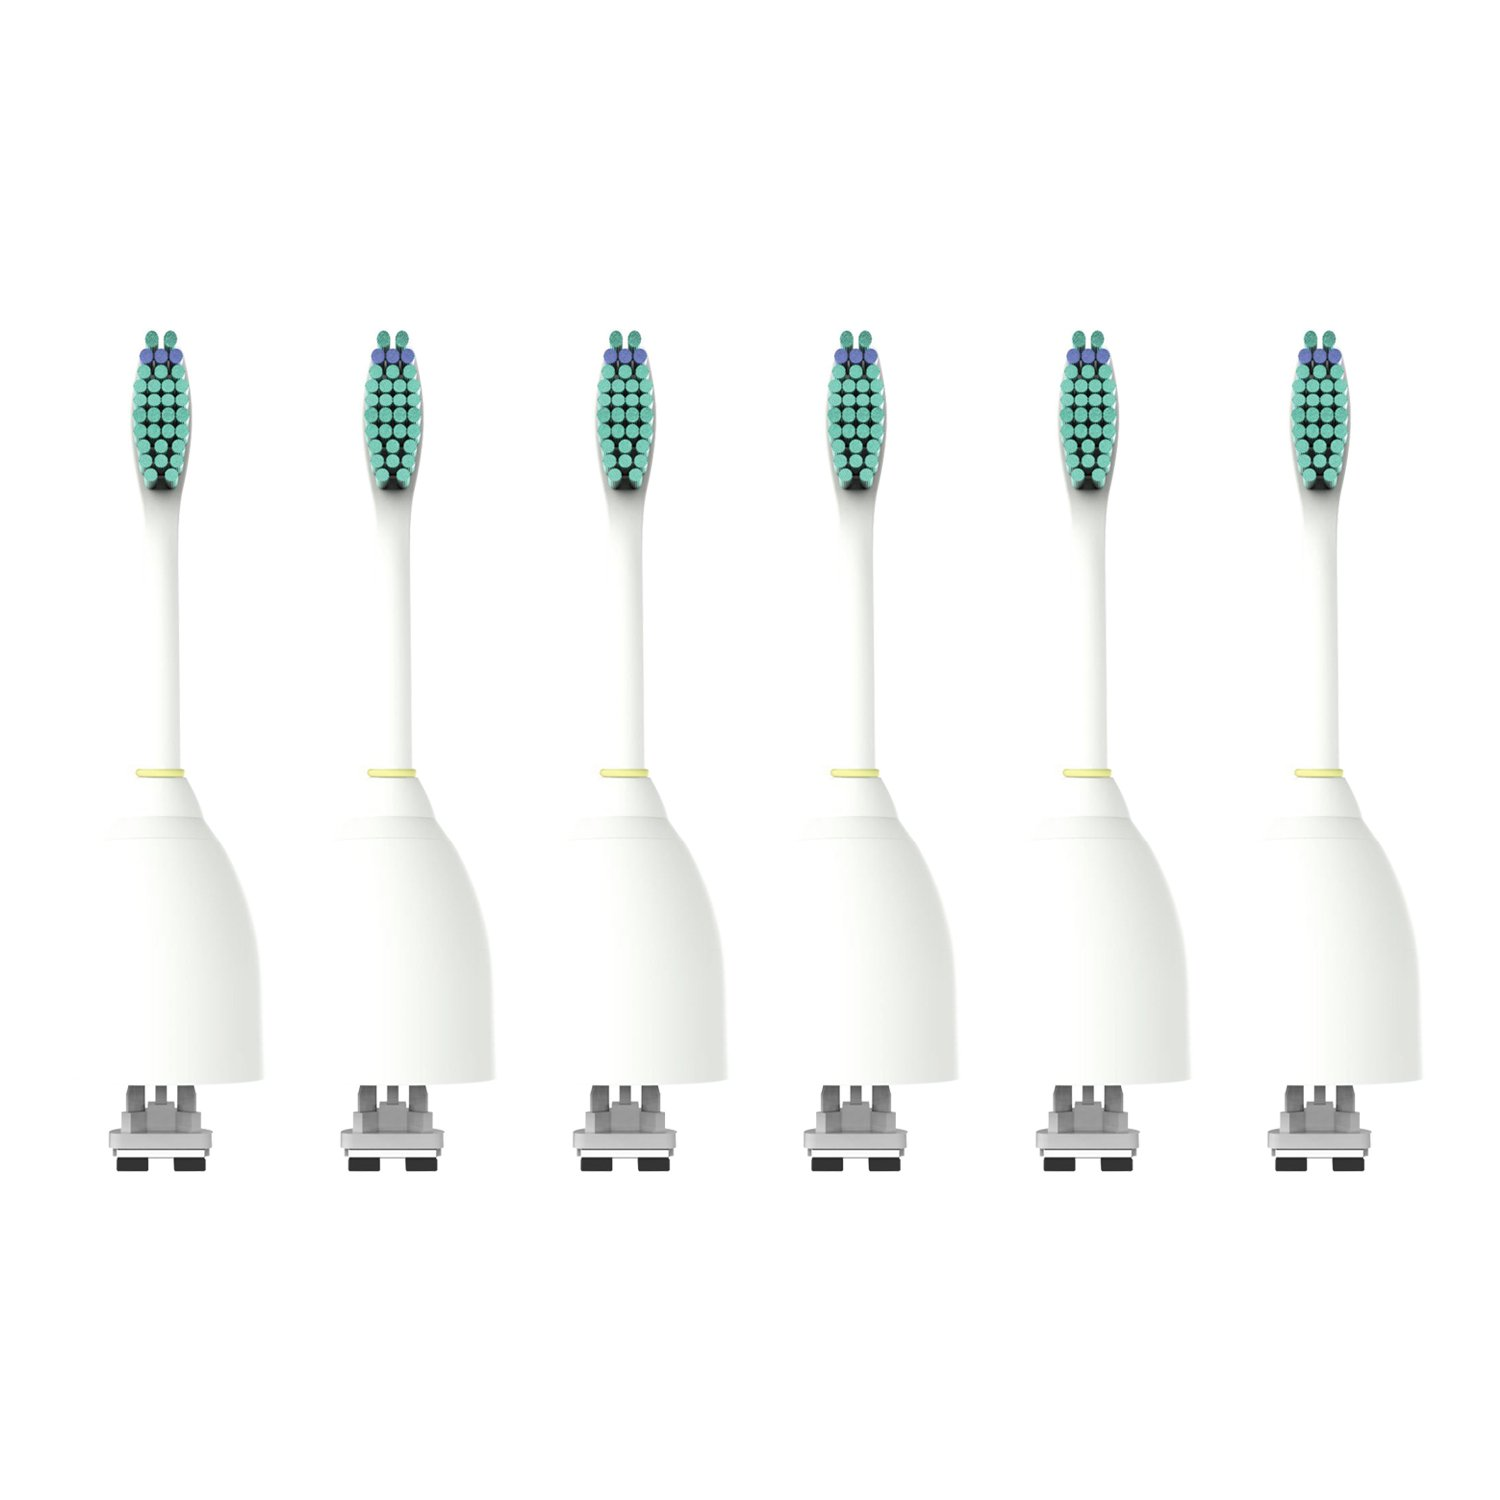 SoniForce Premium Standard Size Replacement Toothbrush Heads for Philips Sonicare e-Series HX7022, 6 pack, fits Sonicare Advance, CleanCare, Elite, Essence and Xtreme Philips Brush Handles